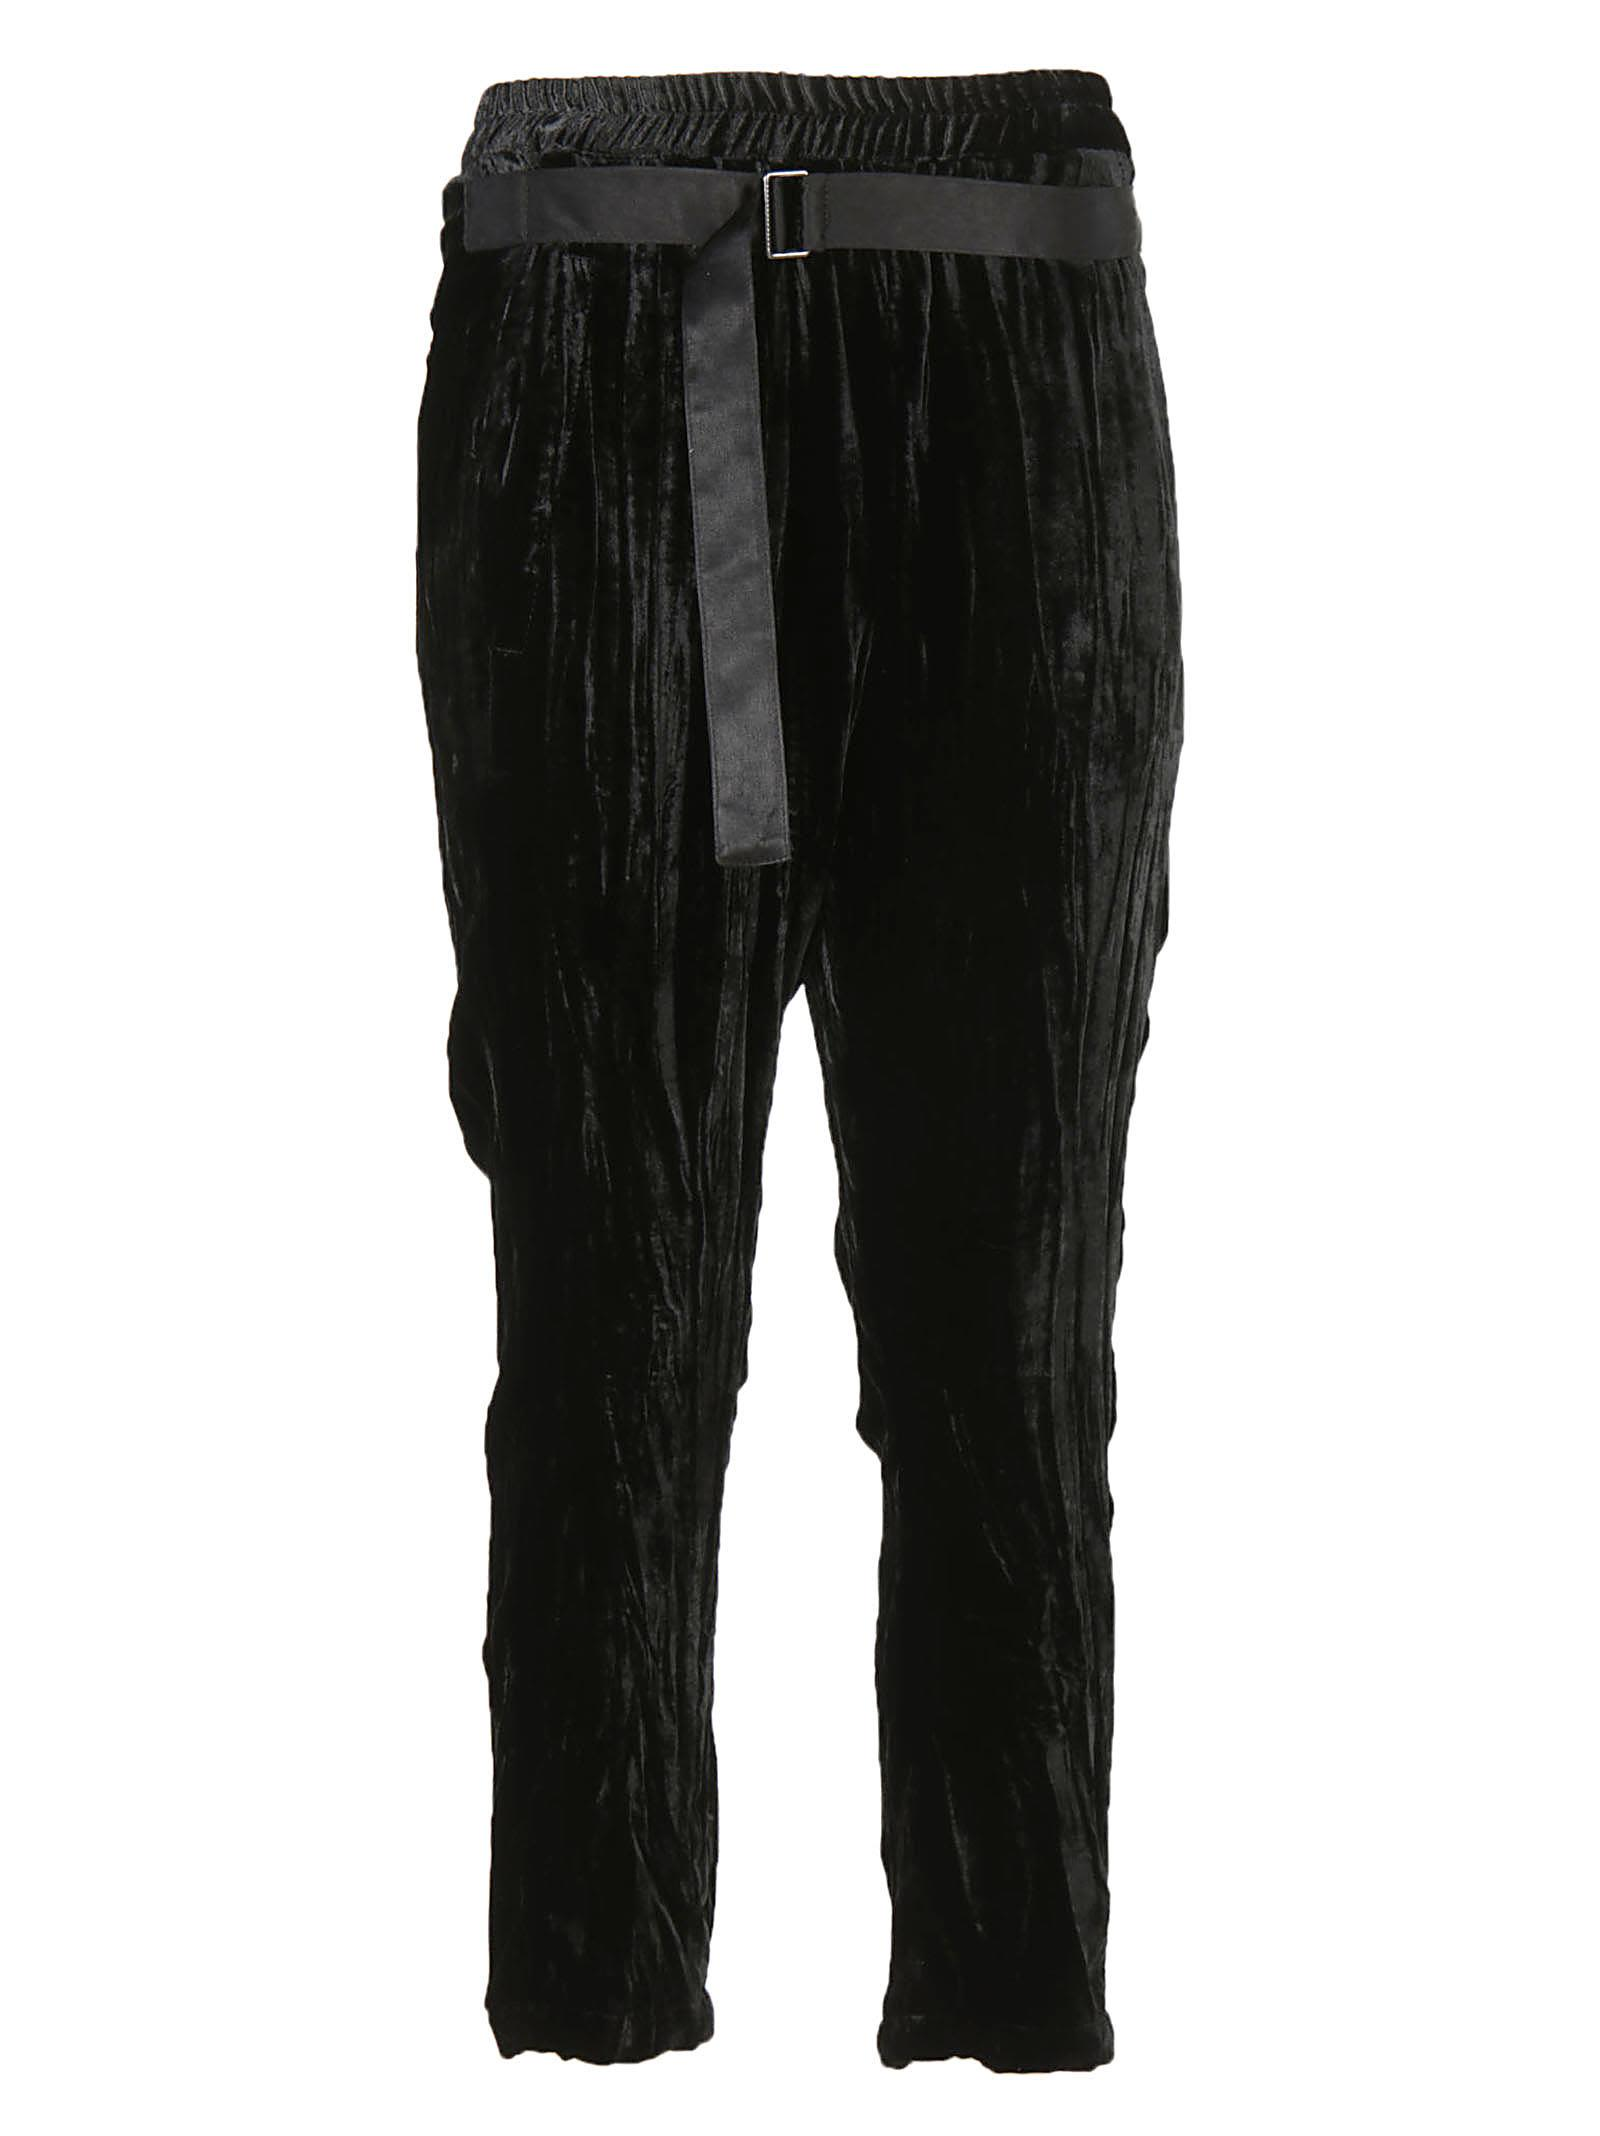 Ann Demeulemeester Belted Trousers